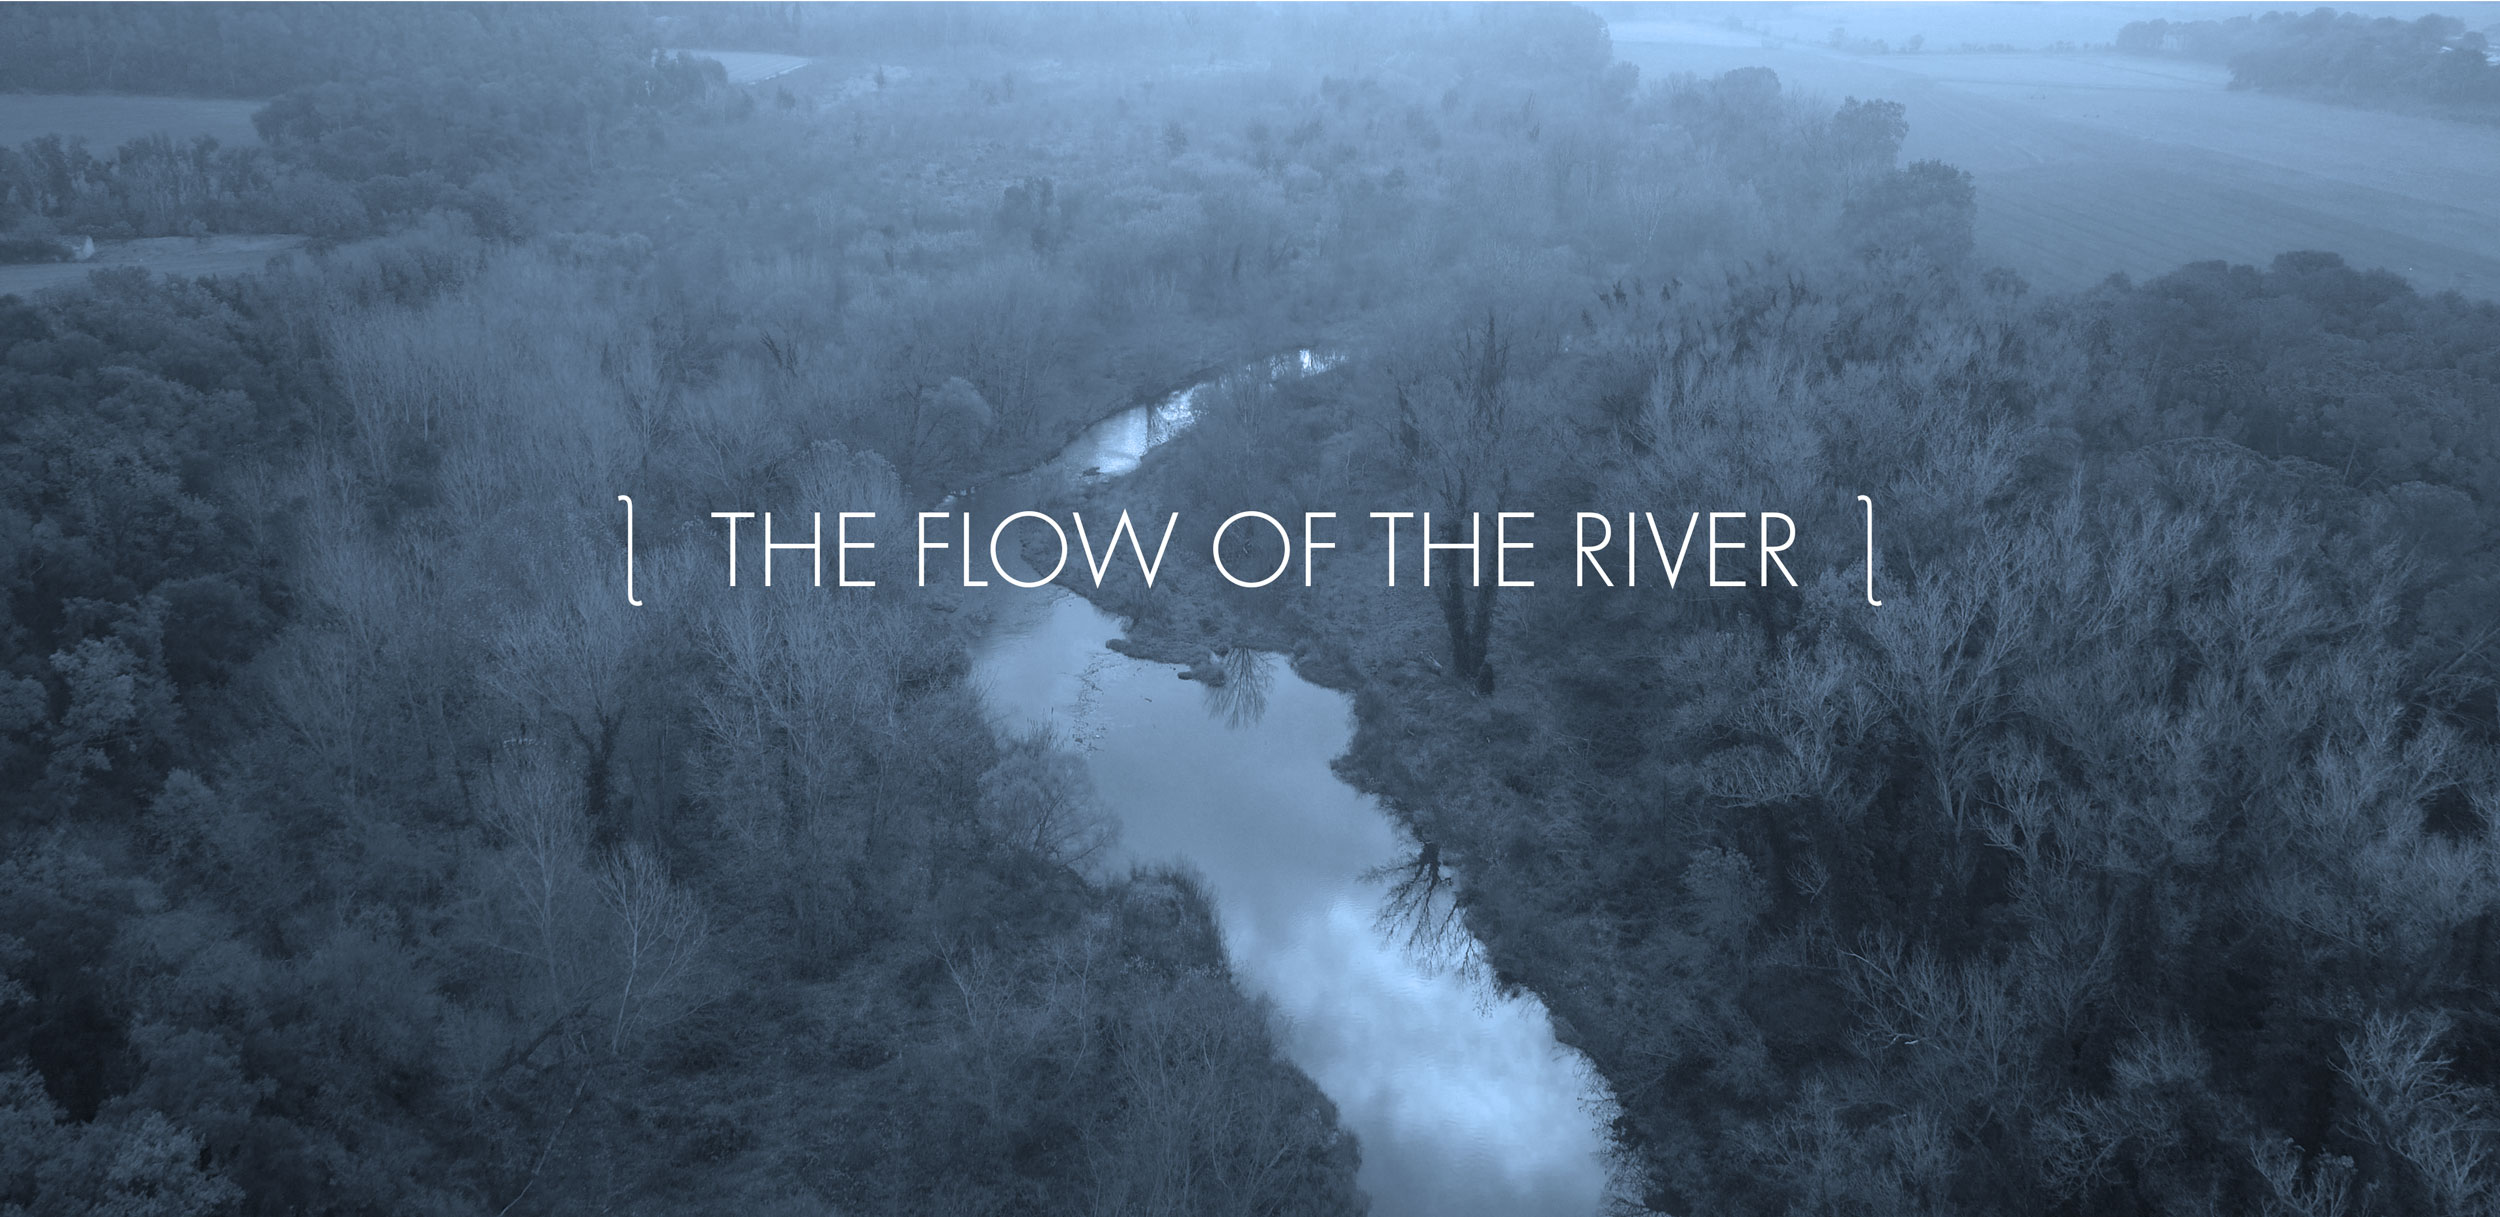 The flow of the river